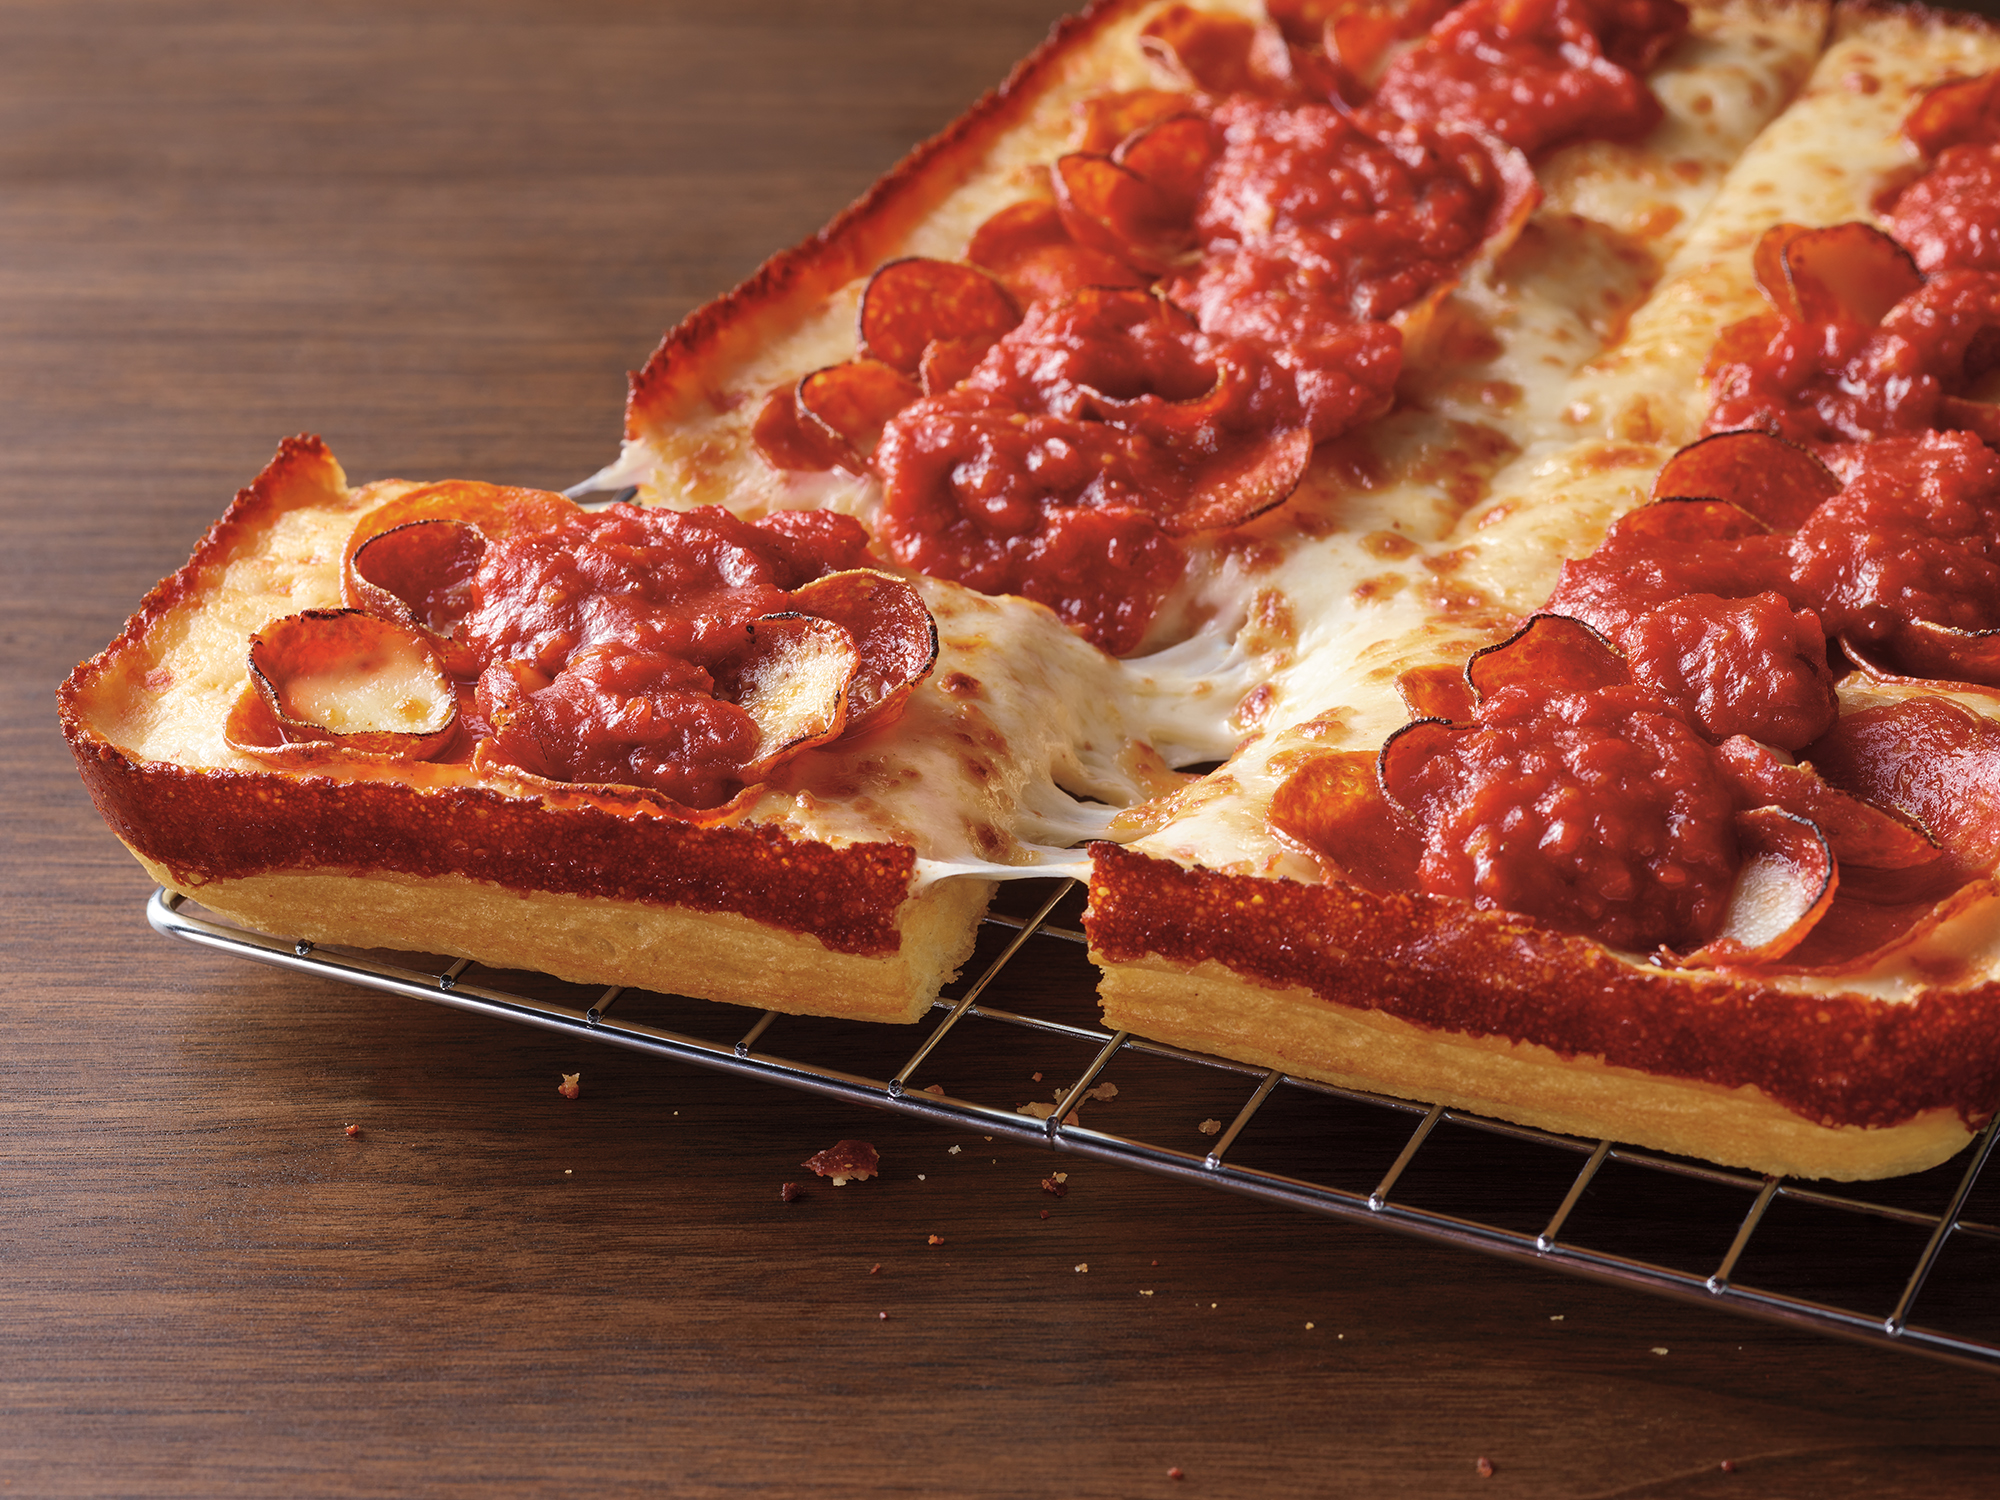 Pizza Hut debuts a new Detroit-style pizza